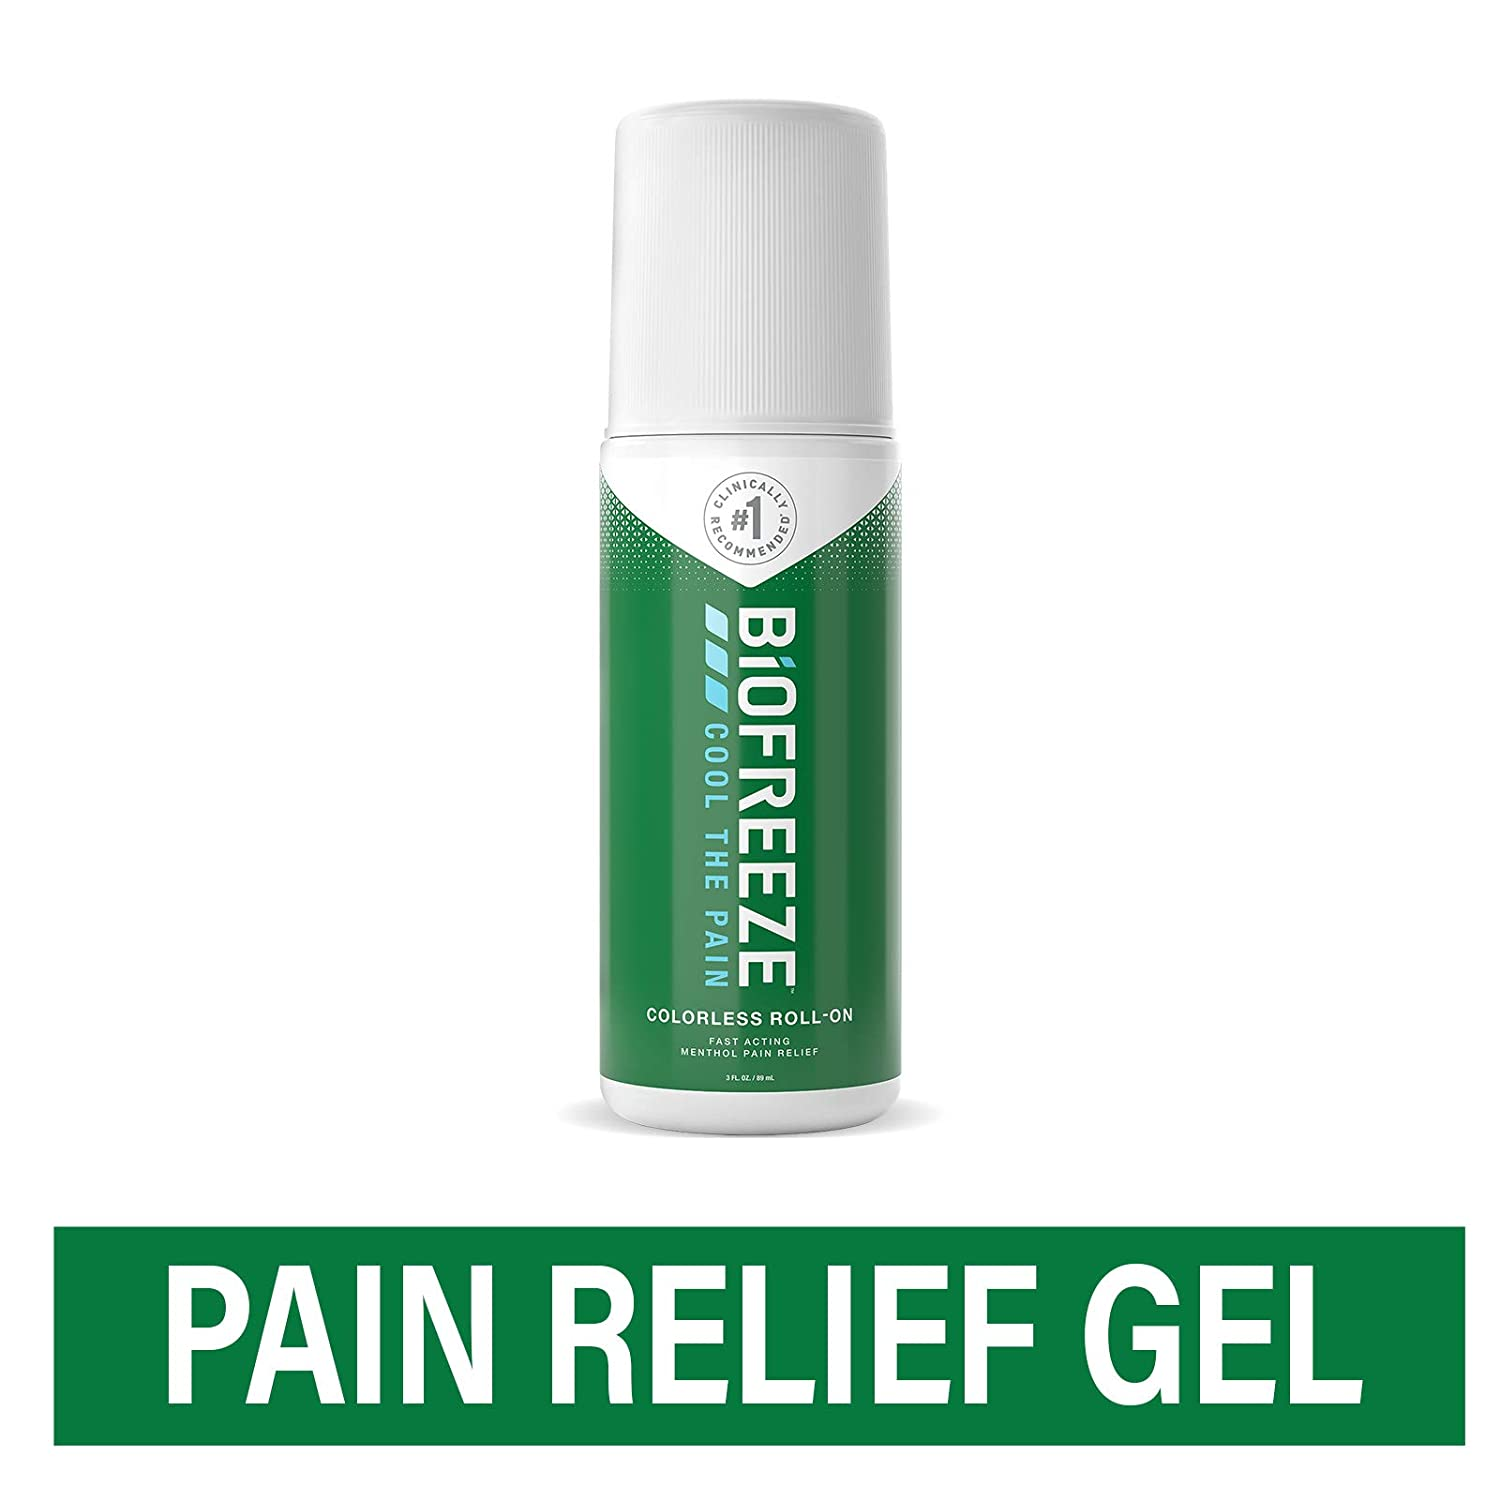 Biofreeze Pain Relief Gel, 3 oz. Colorless Roll-On, Fast Acting, Long Lasting, & Powerful Topical Pain Reliever (Packaging May Vary)